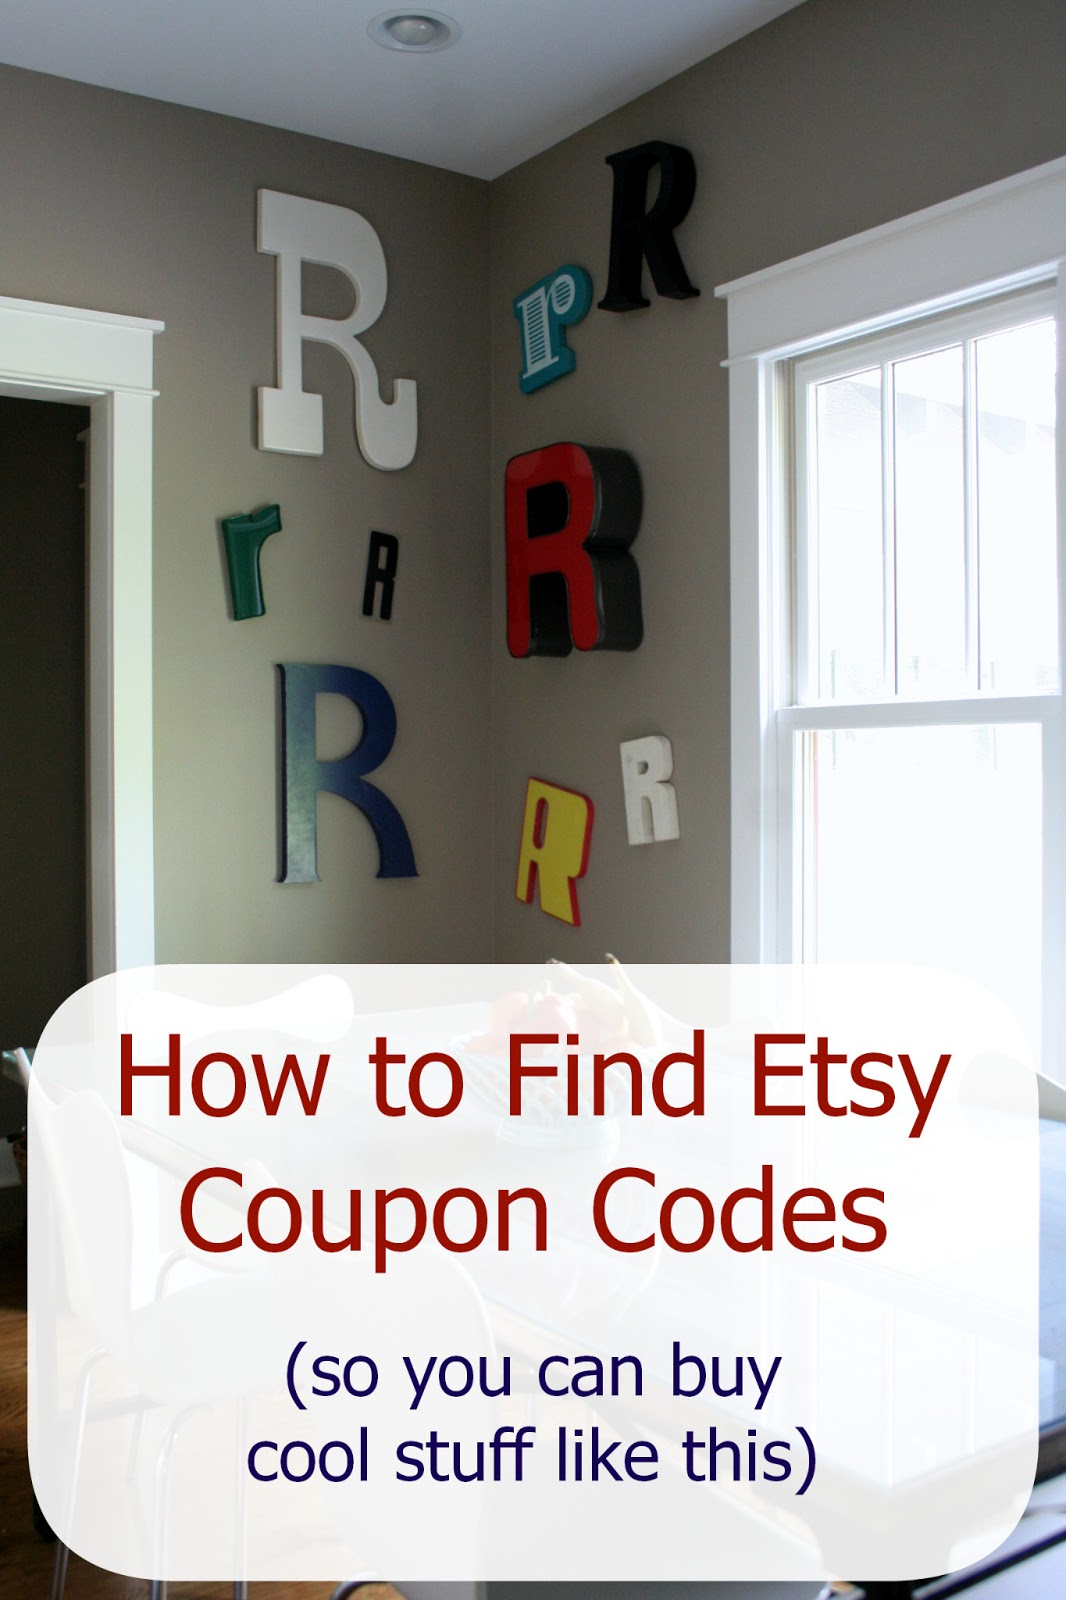 2 Cute Clothing Store Online Coupon Codes ways to find Etsy coupon